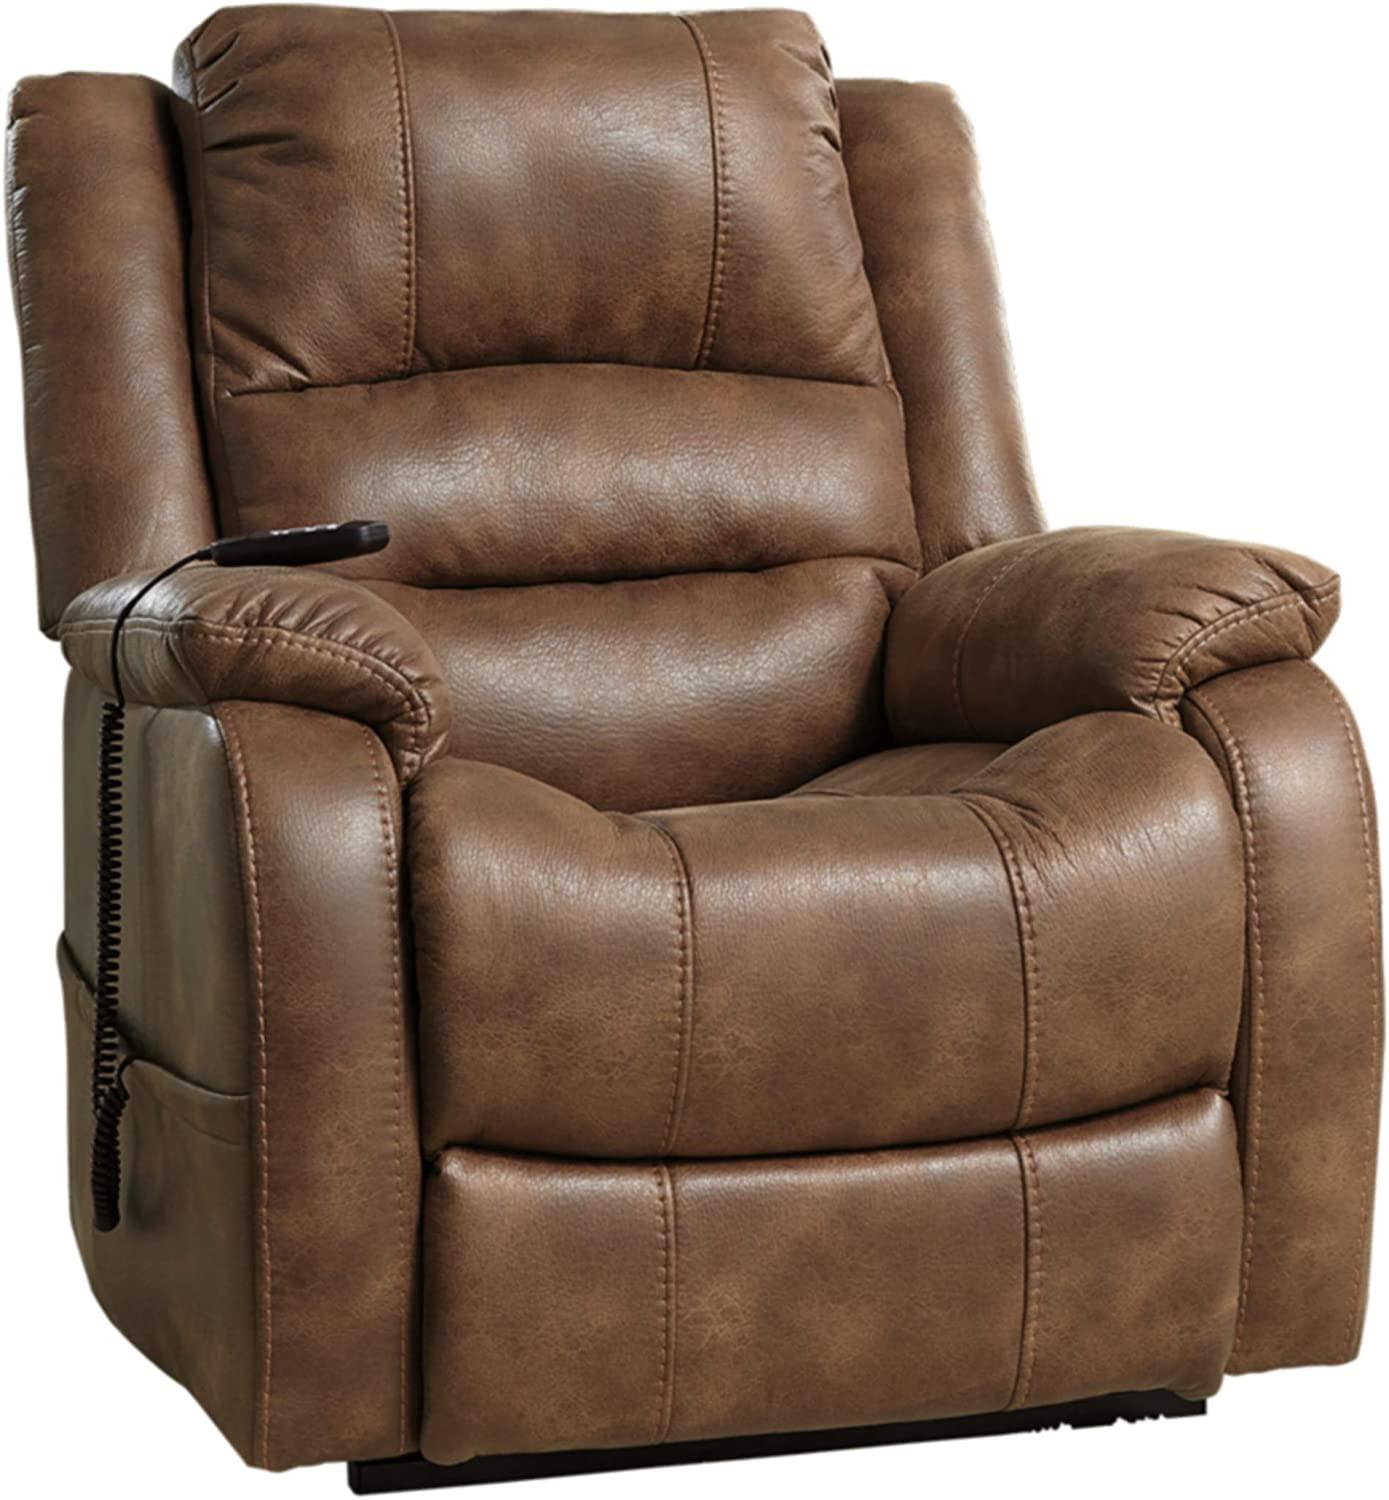 Signature Design by Ashley 1090012 Recliner, 37 D x 35.5 W x 42.75 H, Saddle